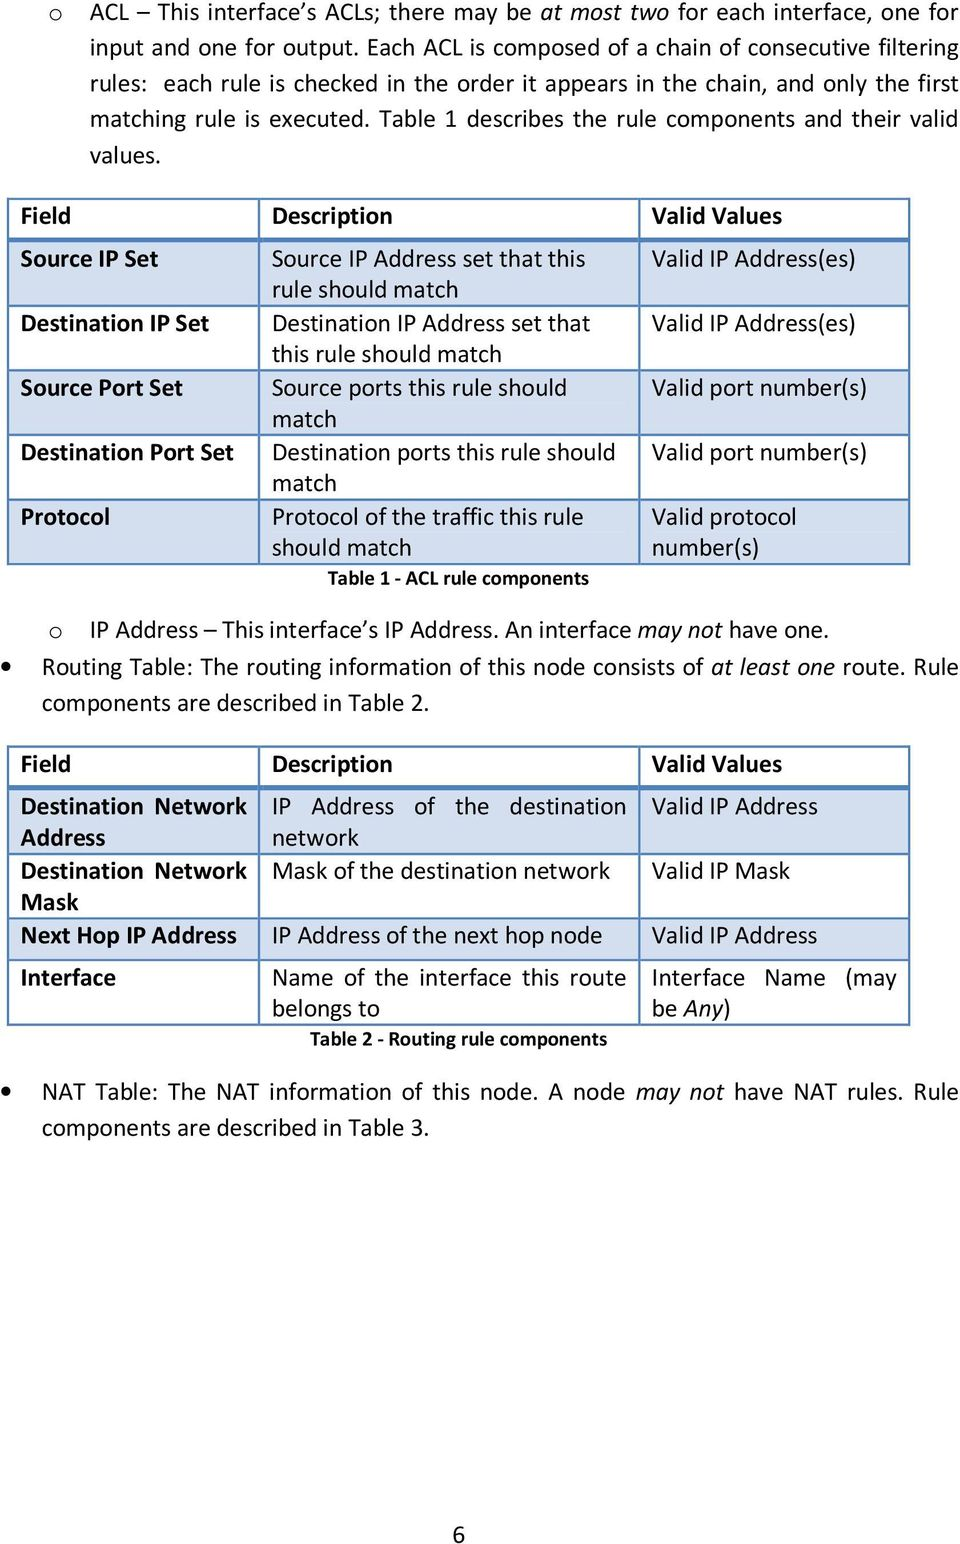 Table 1 describes the rule components and their valid values.